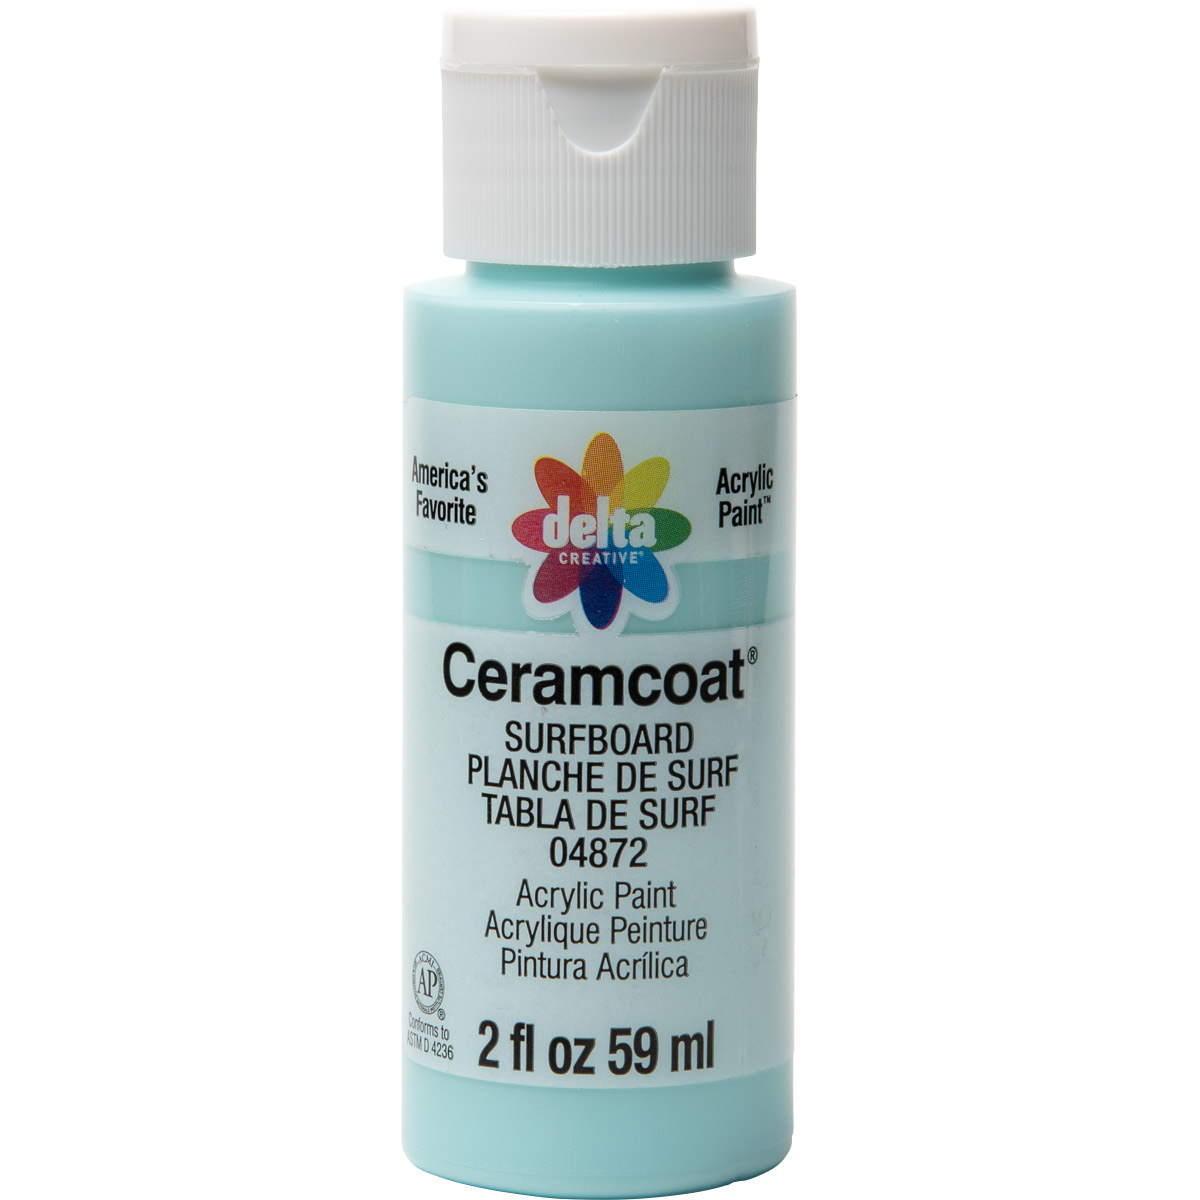 Delta Ceramcoat ® Acrylic Paint - Surfboard, 2 oz. - 04872